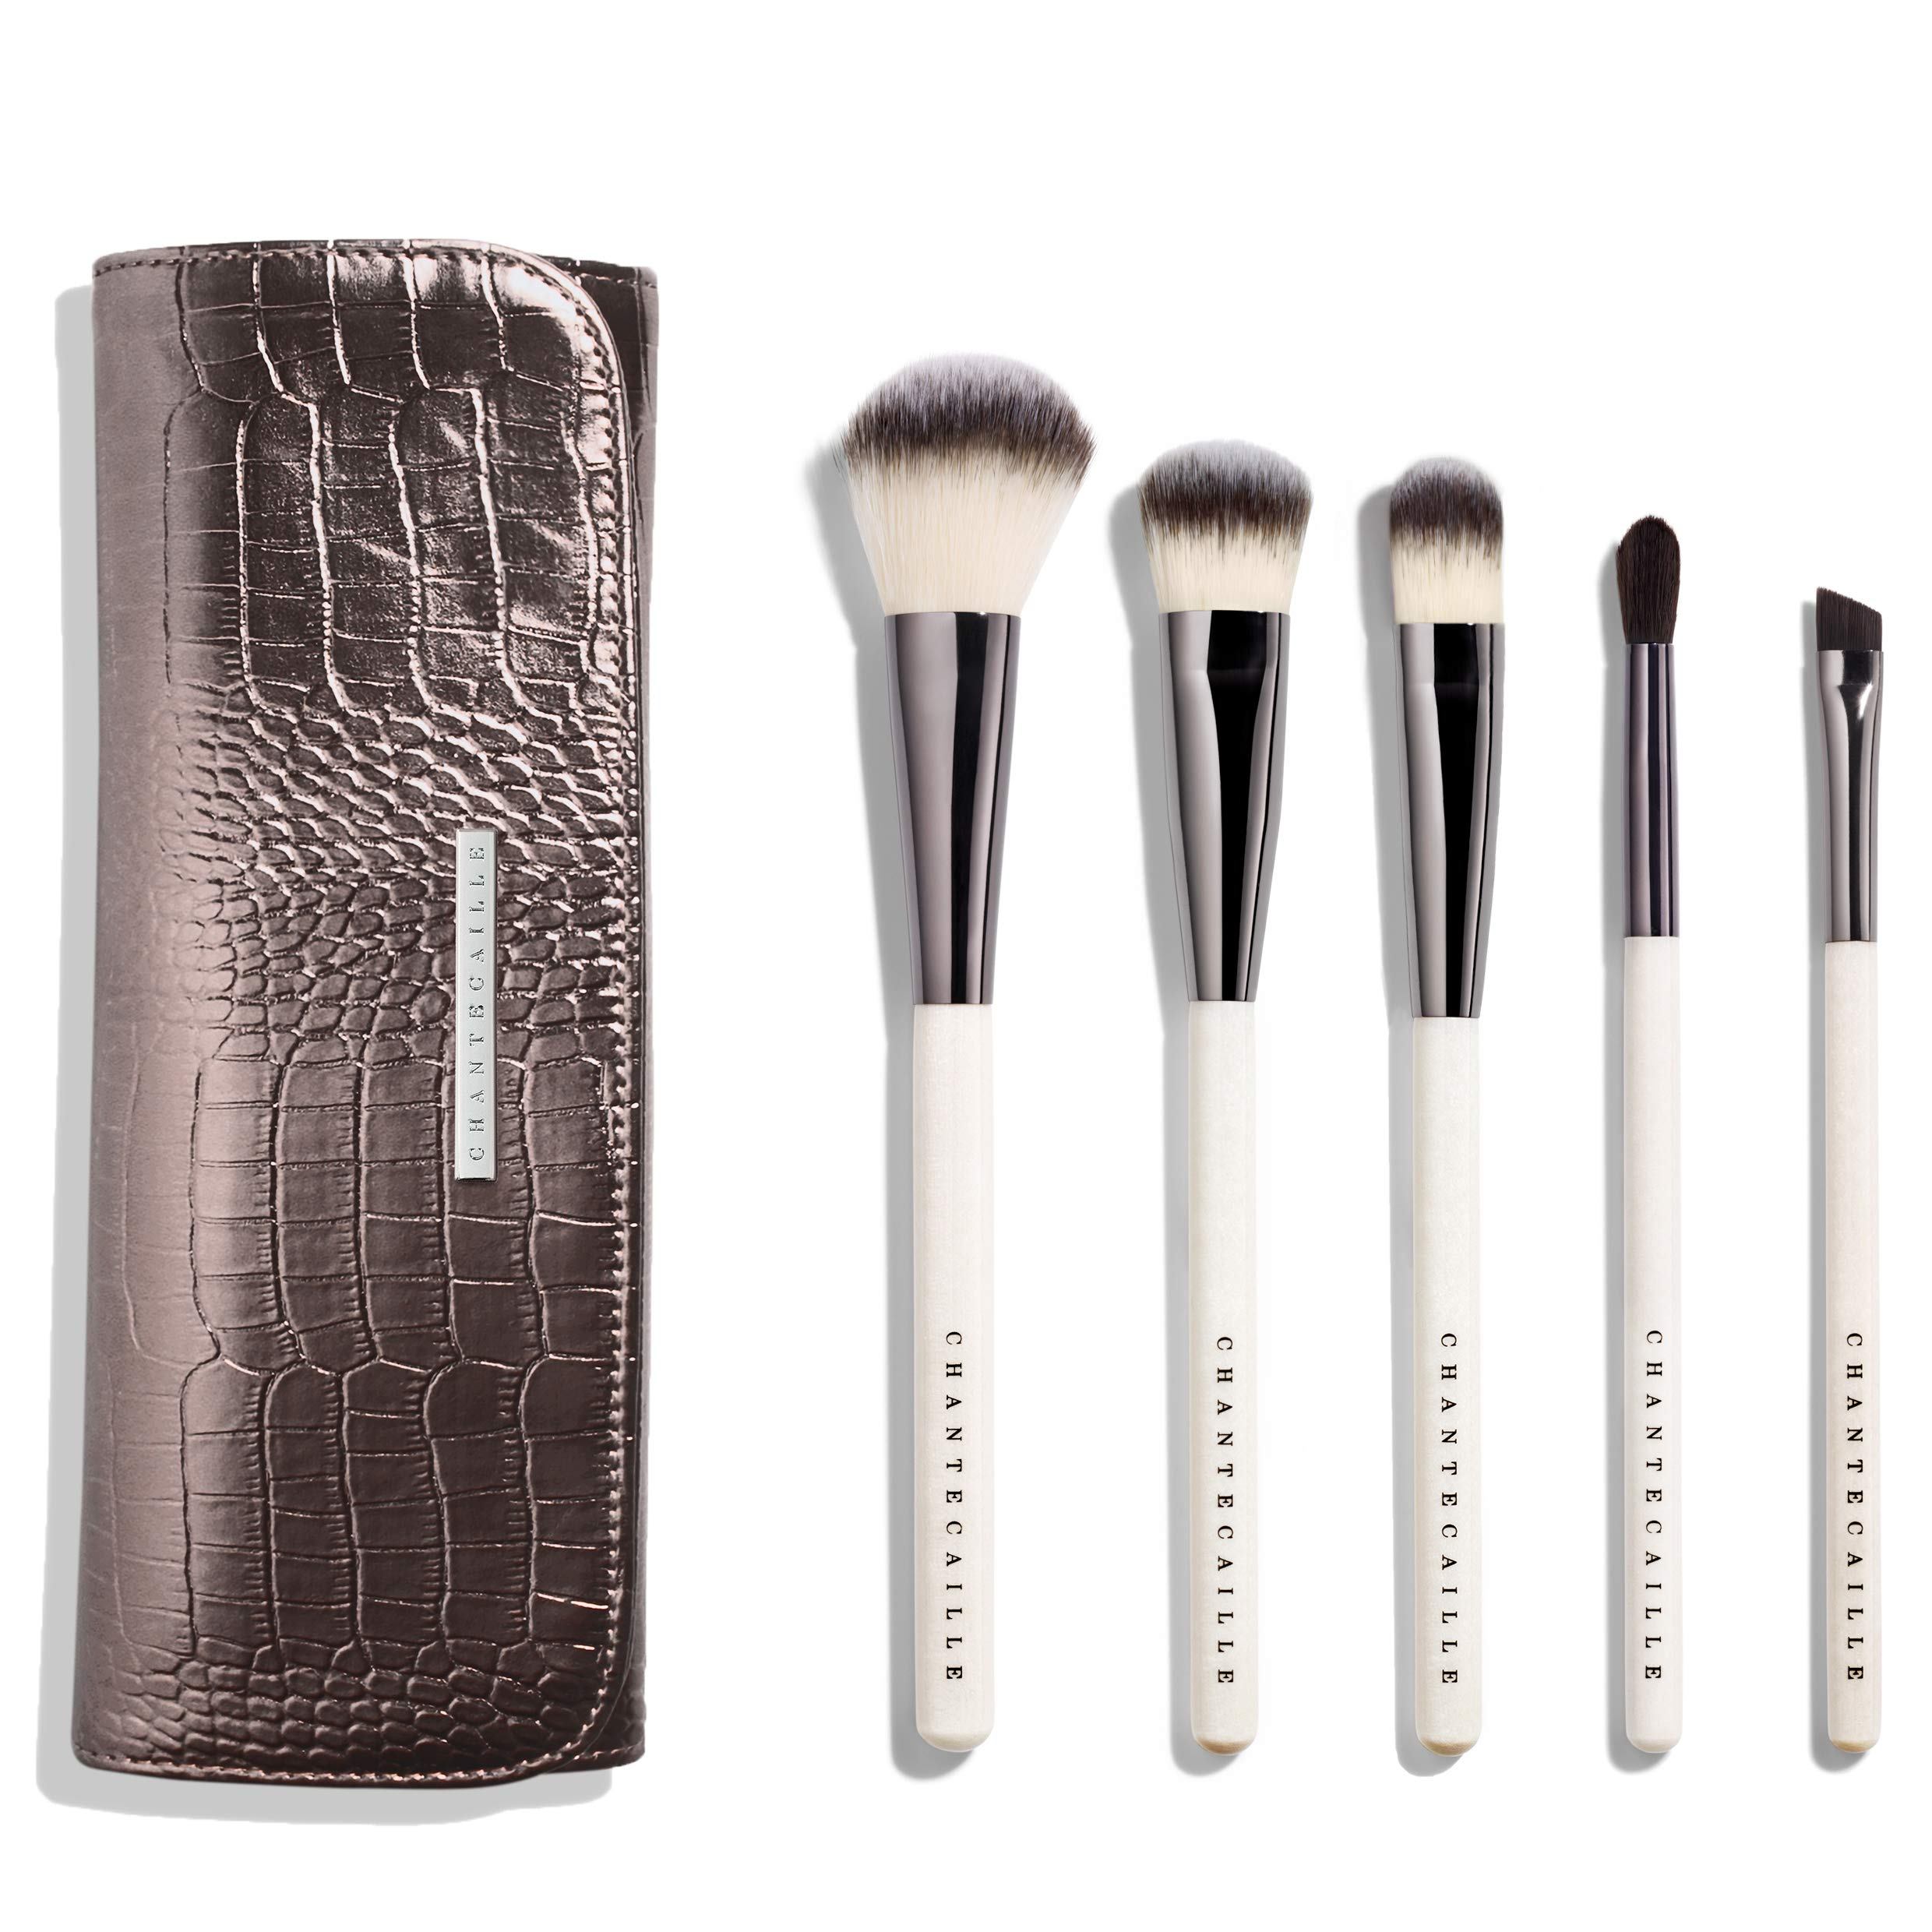 Chantecaille Ultimate Brush Set by Chantecaille